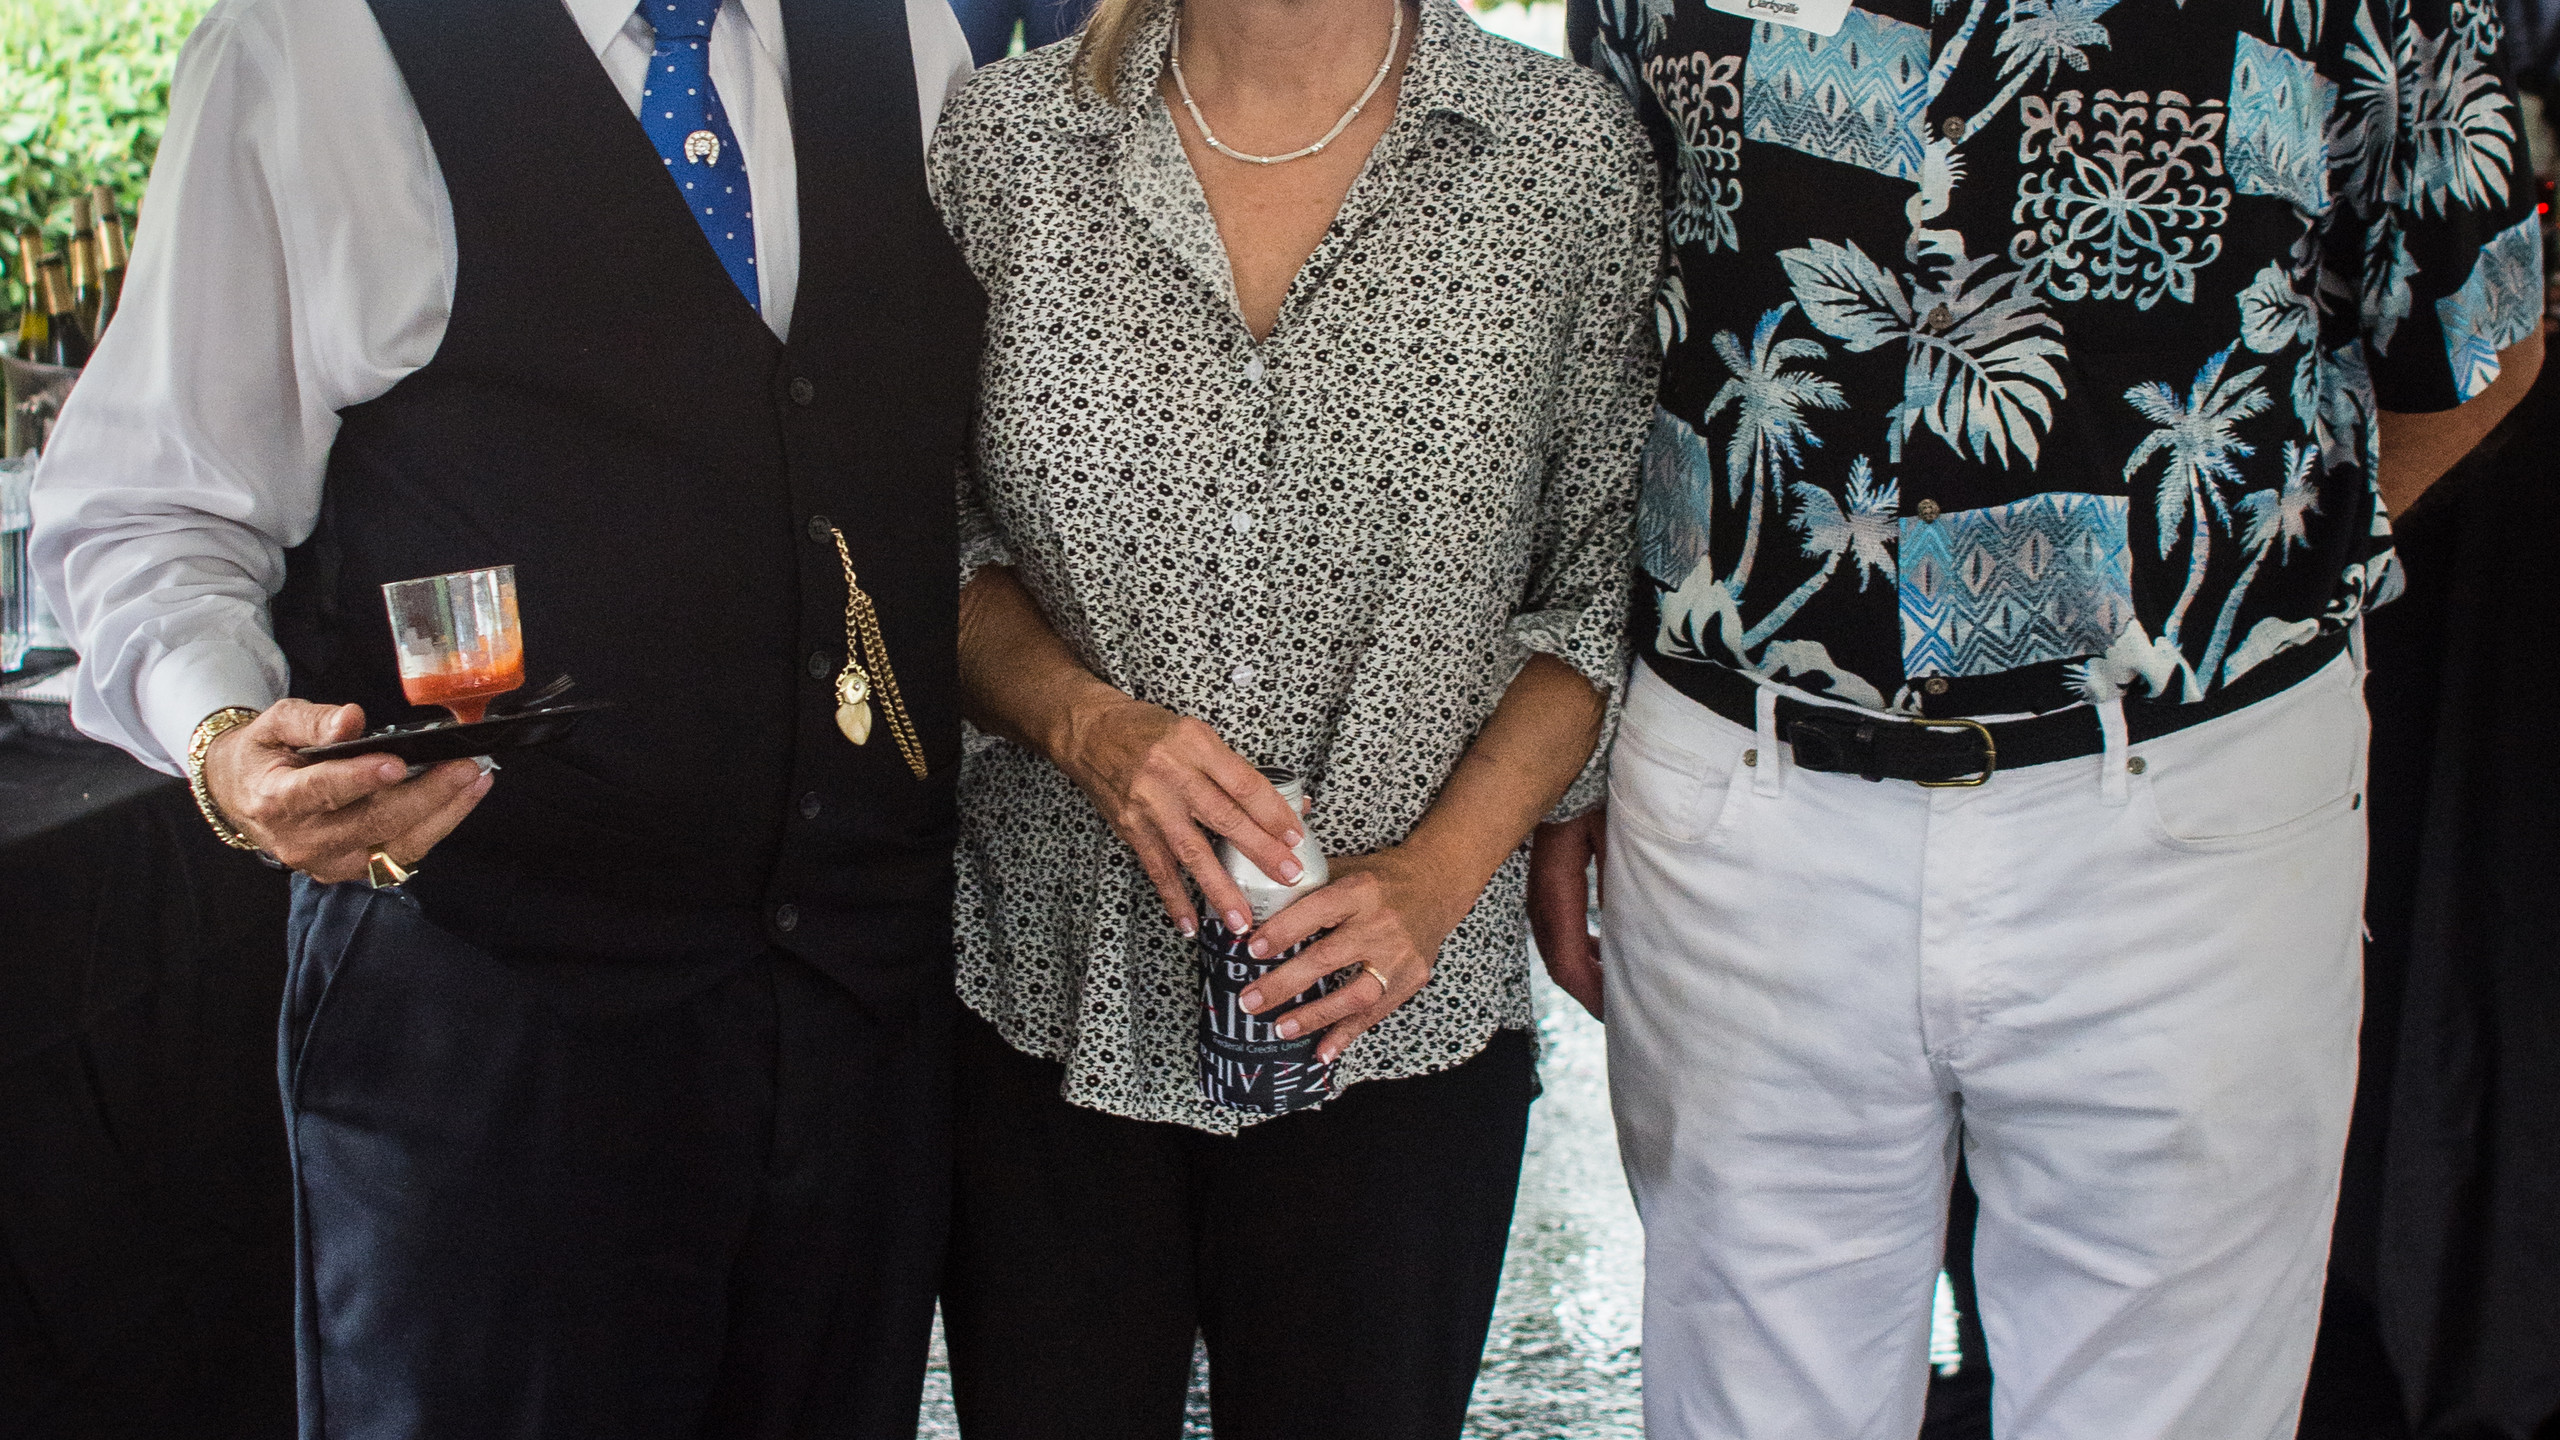 Kevin Kennedy, Cindy Chambers, and Charles Smith